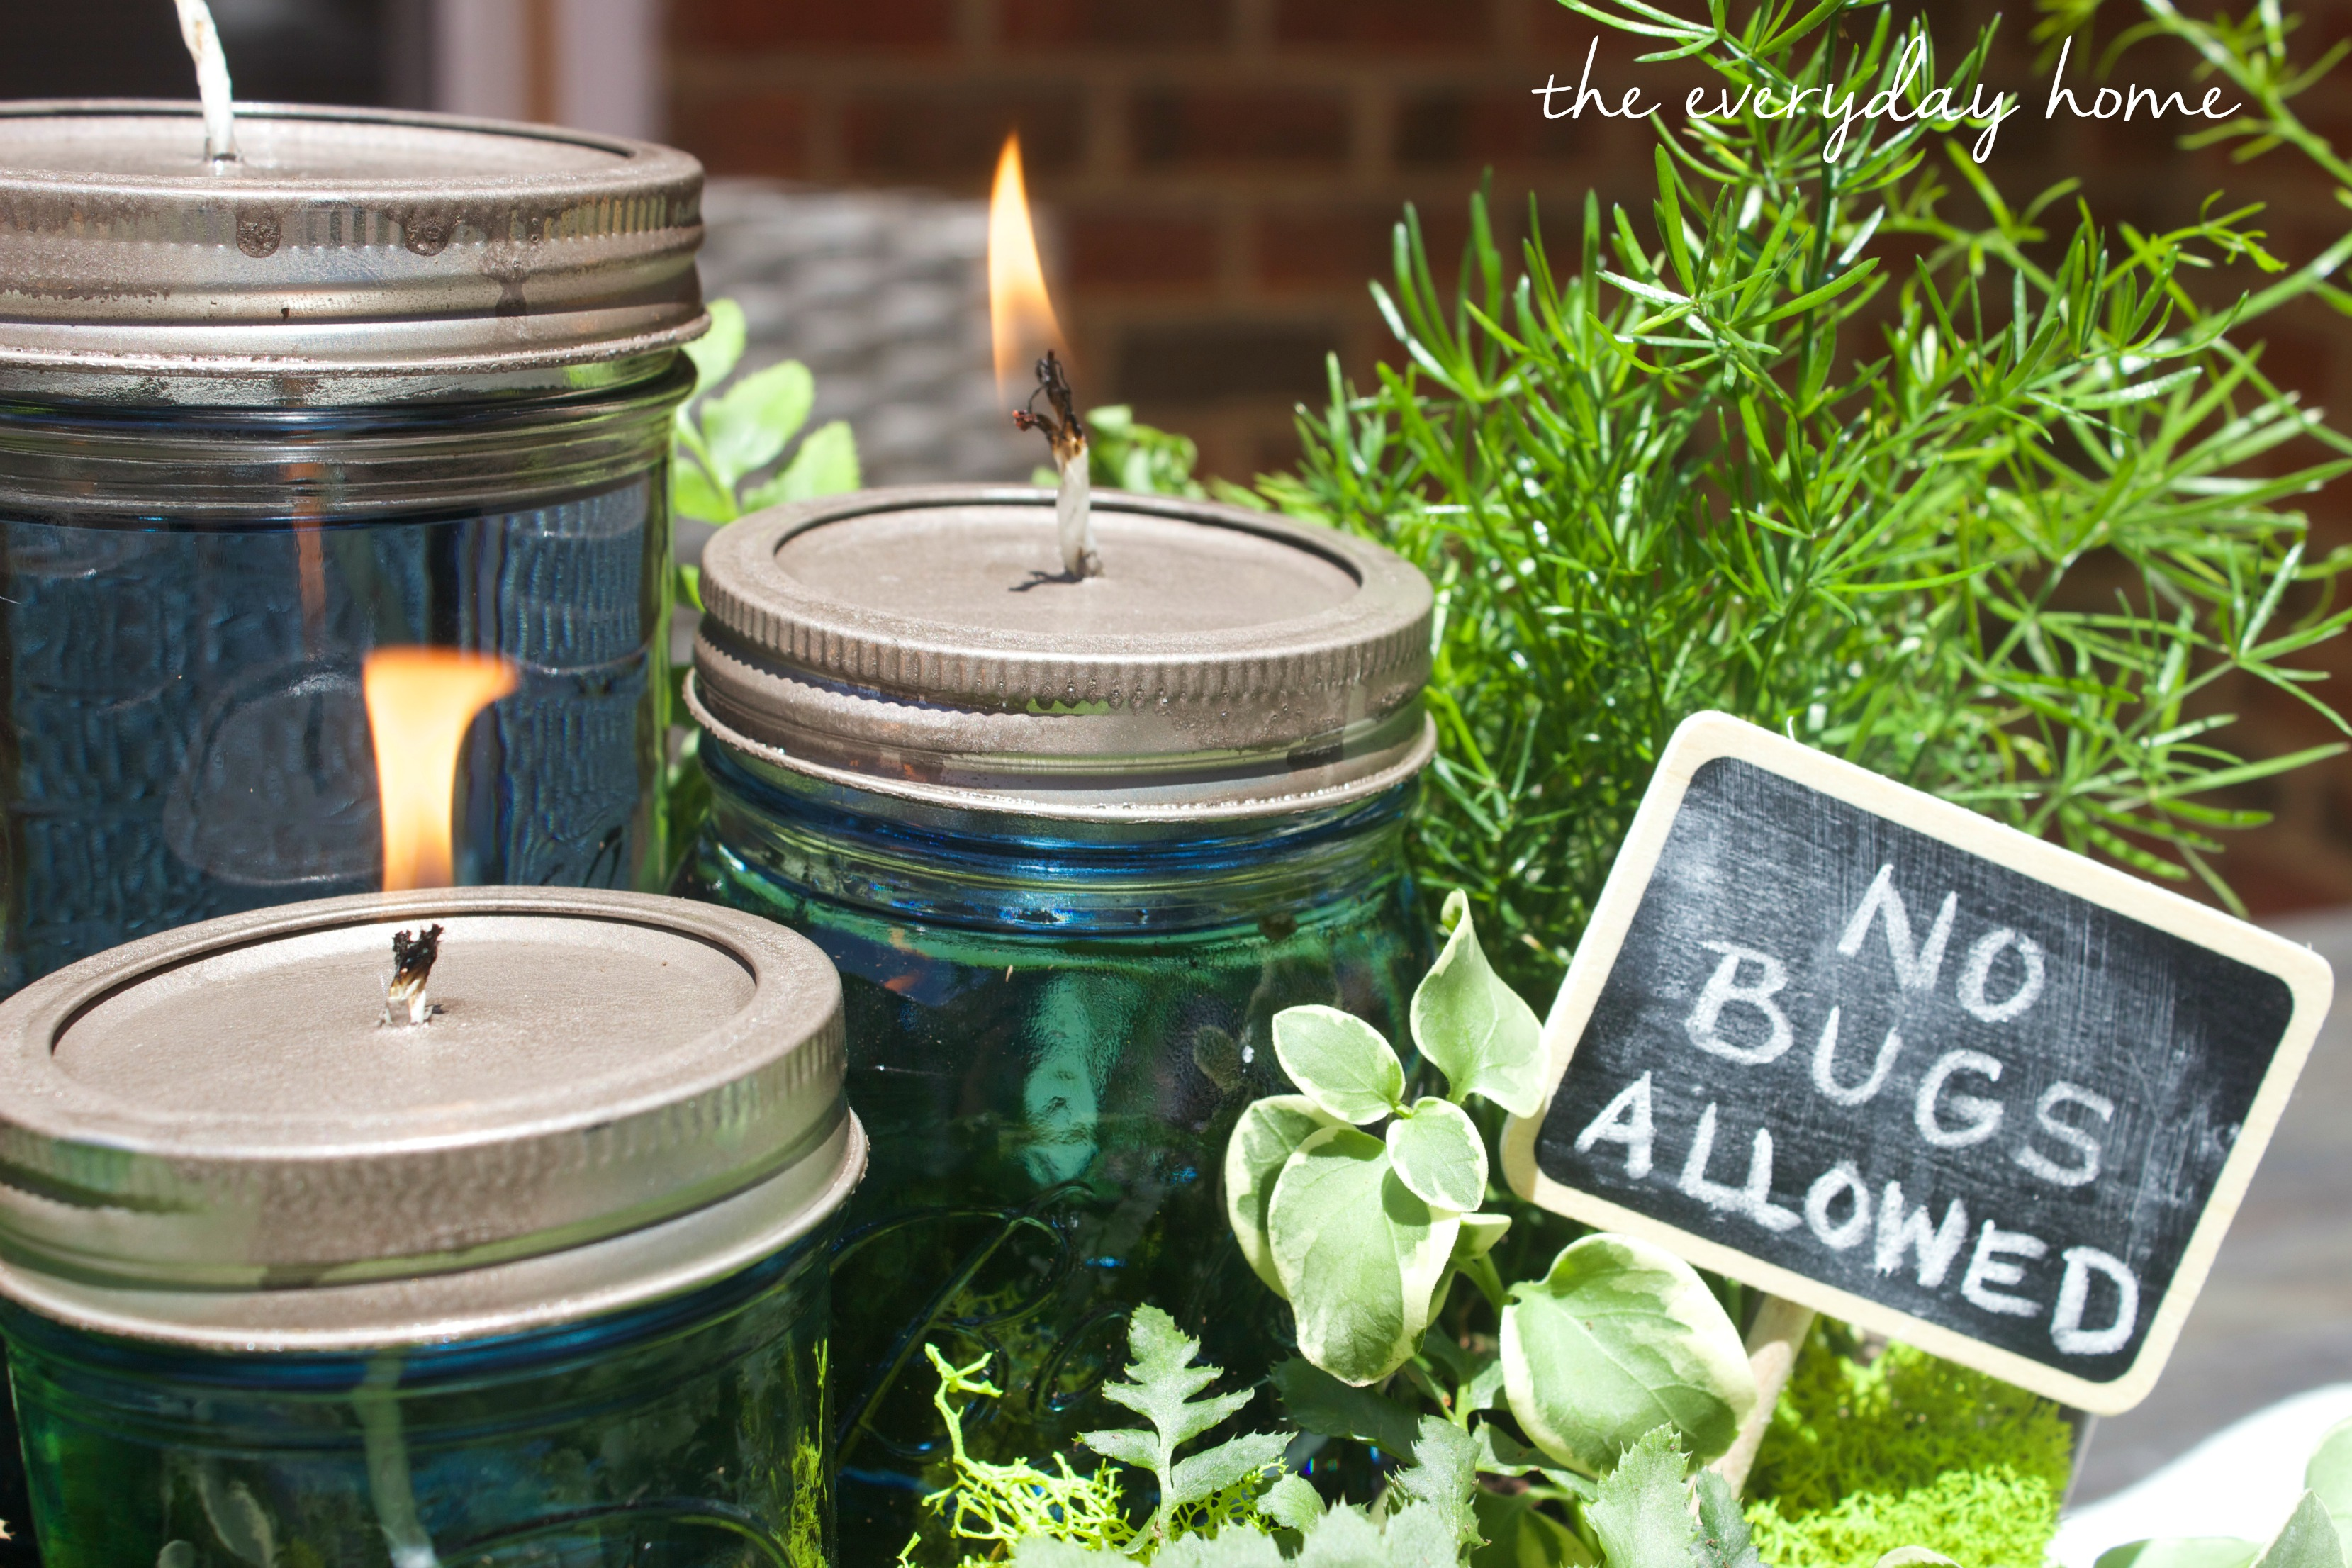 DIY Citronella Mason Jar Candles   The Everyday Home Blog  www.everydayhomeblog.com (1)